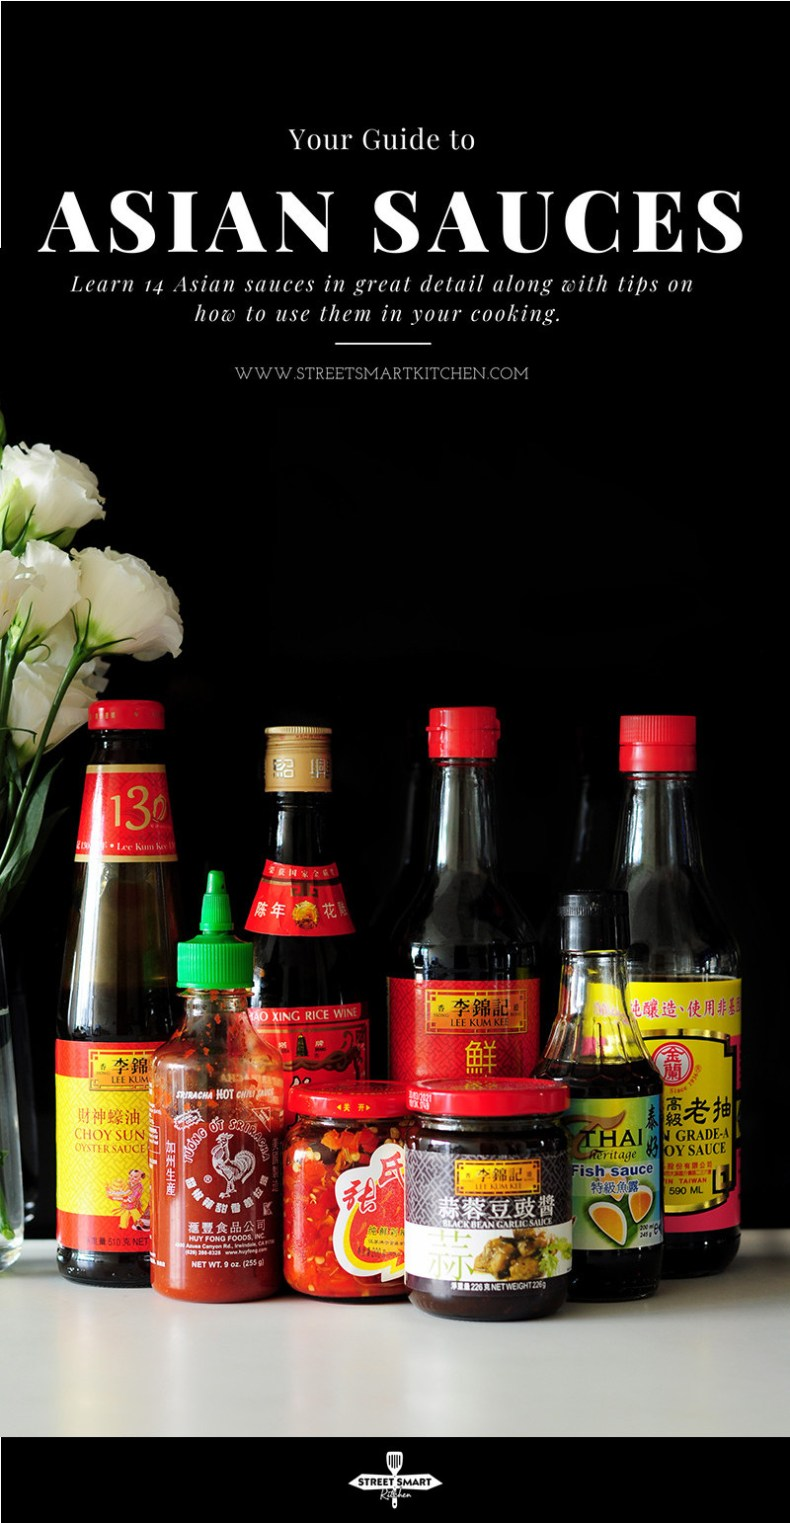 Have you ever attempted to try some Asian sauces but don't know what to do? In this guide, you'll learn 14 Asian sauces and how to use them in your cooking.